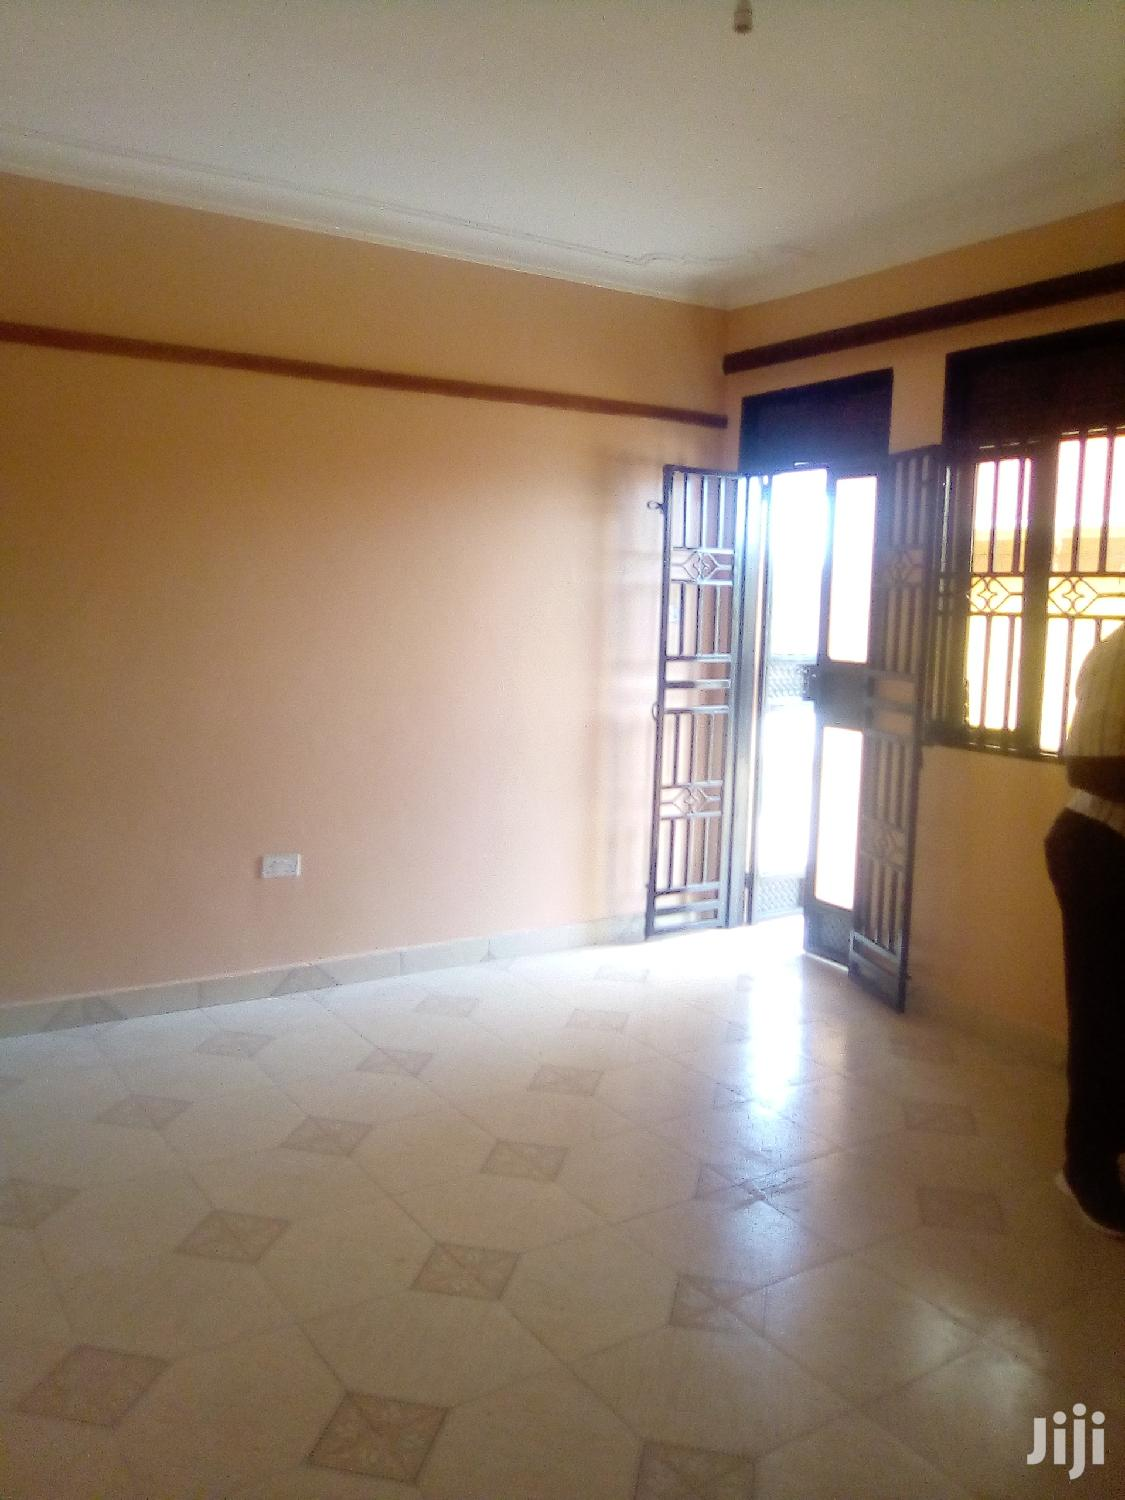 Bweyogerere Self Contained Single Room House For Rent   Houses & Apartments For Rent for sale in Kampala, Central Region, Uganda